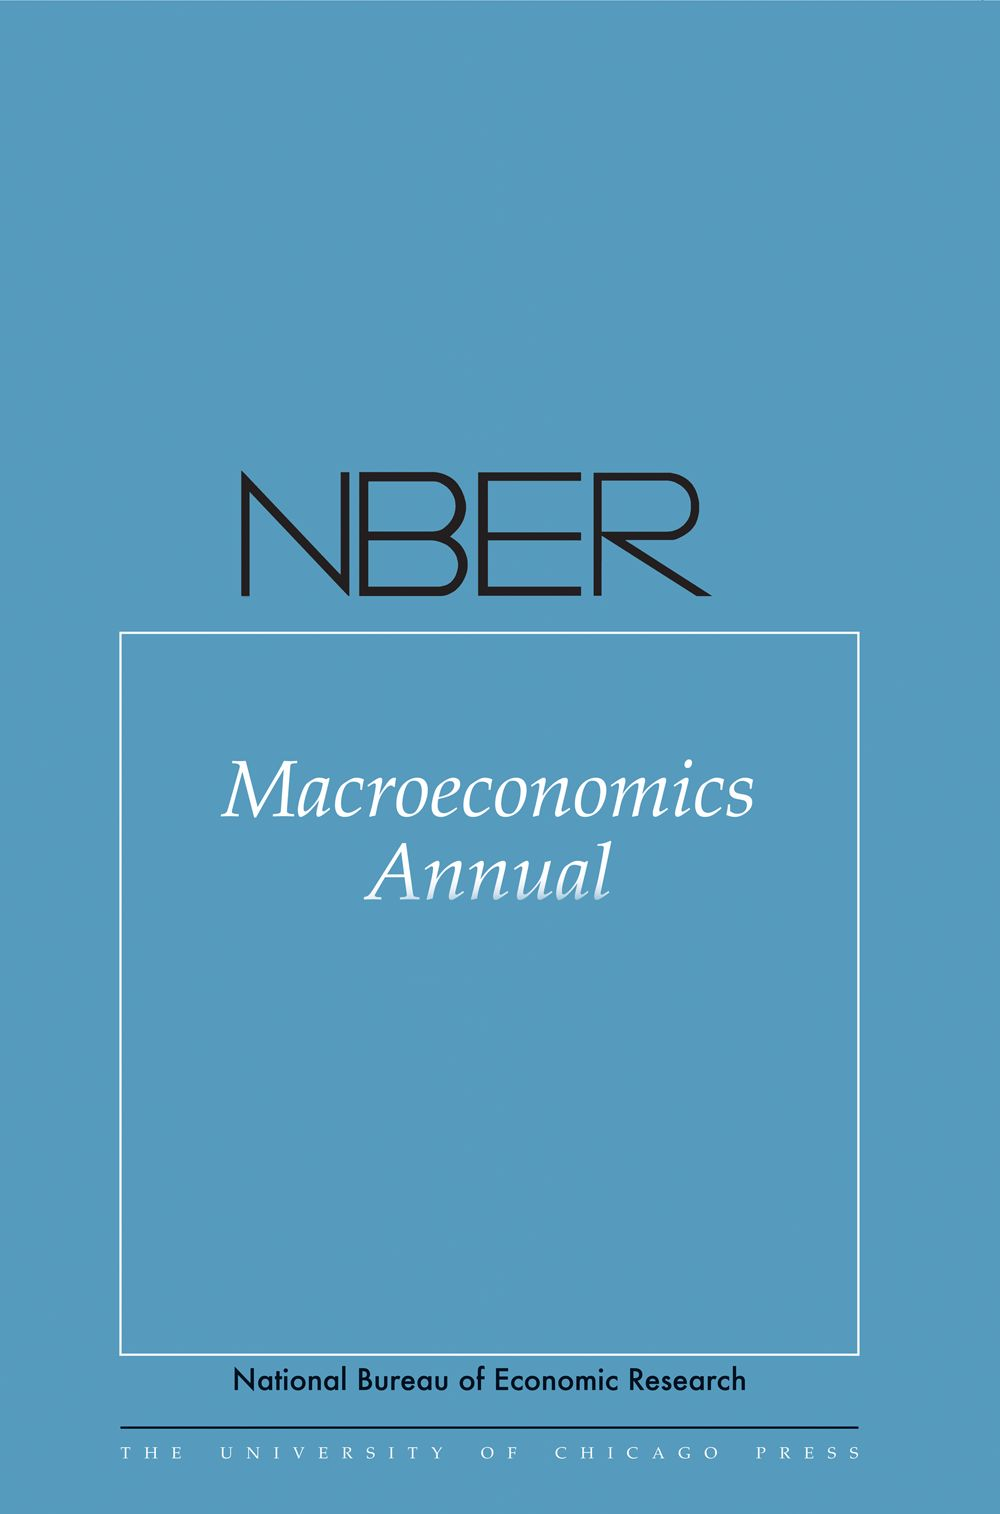 NBER Macroeconomics Annual 2013